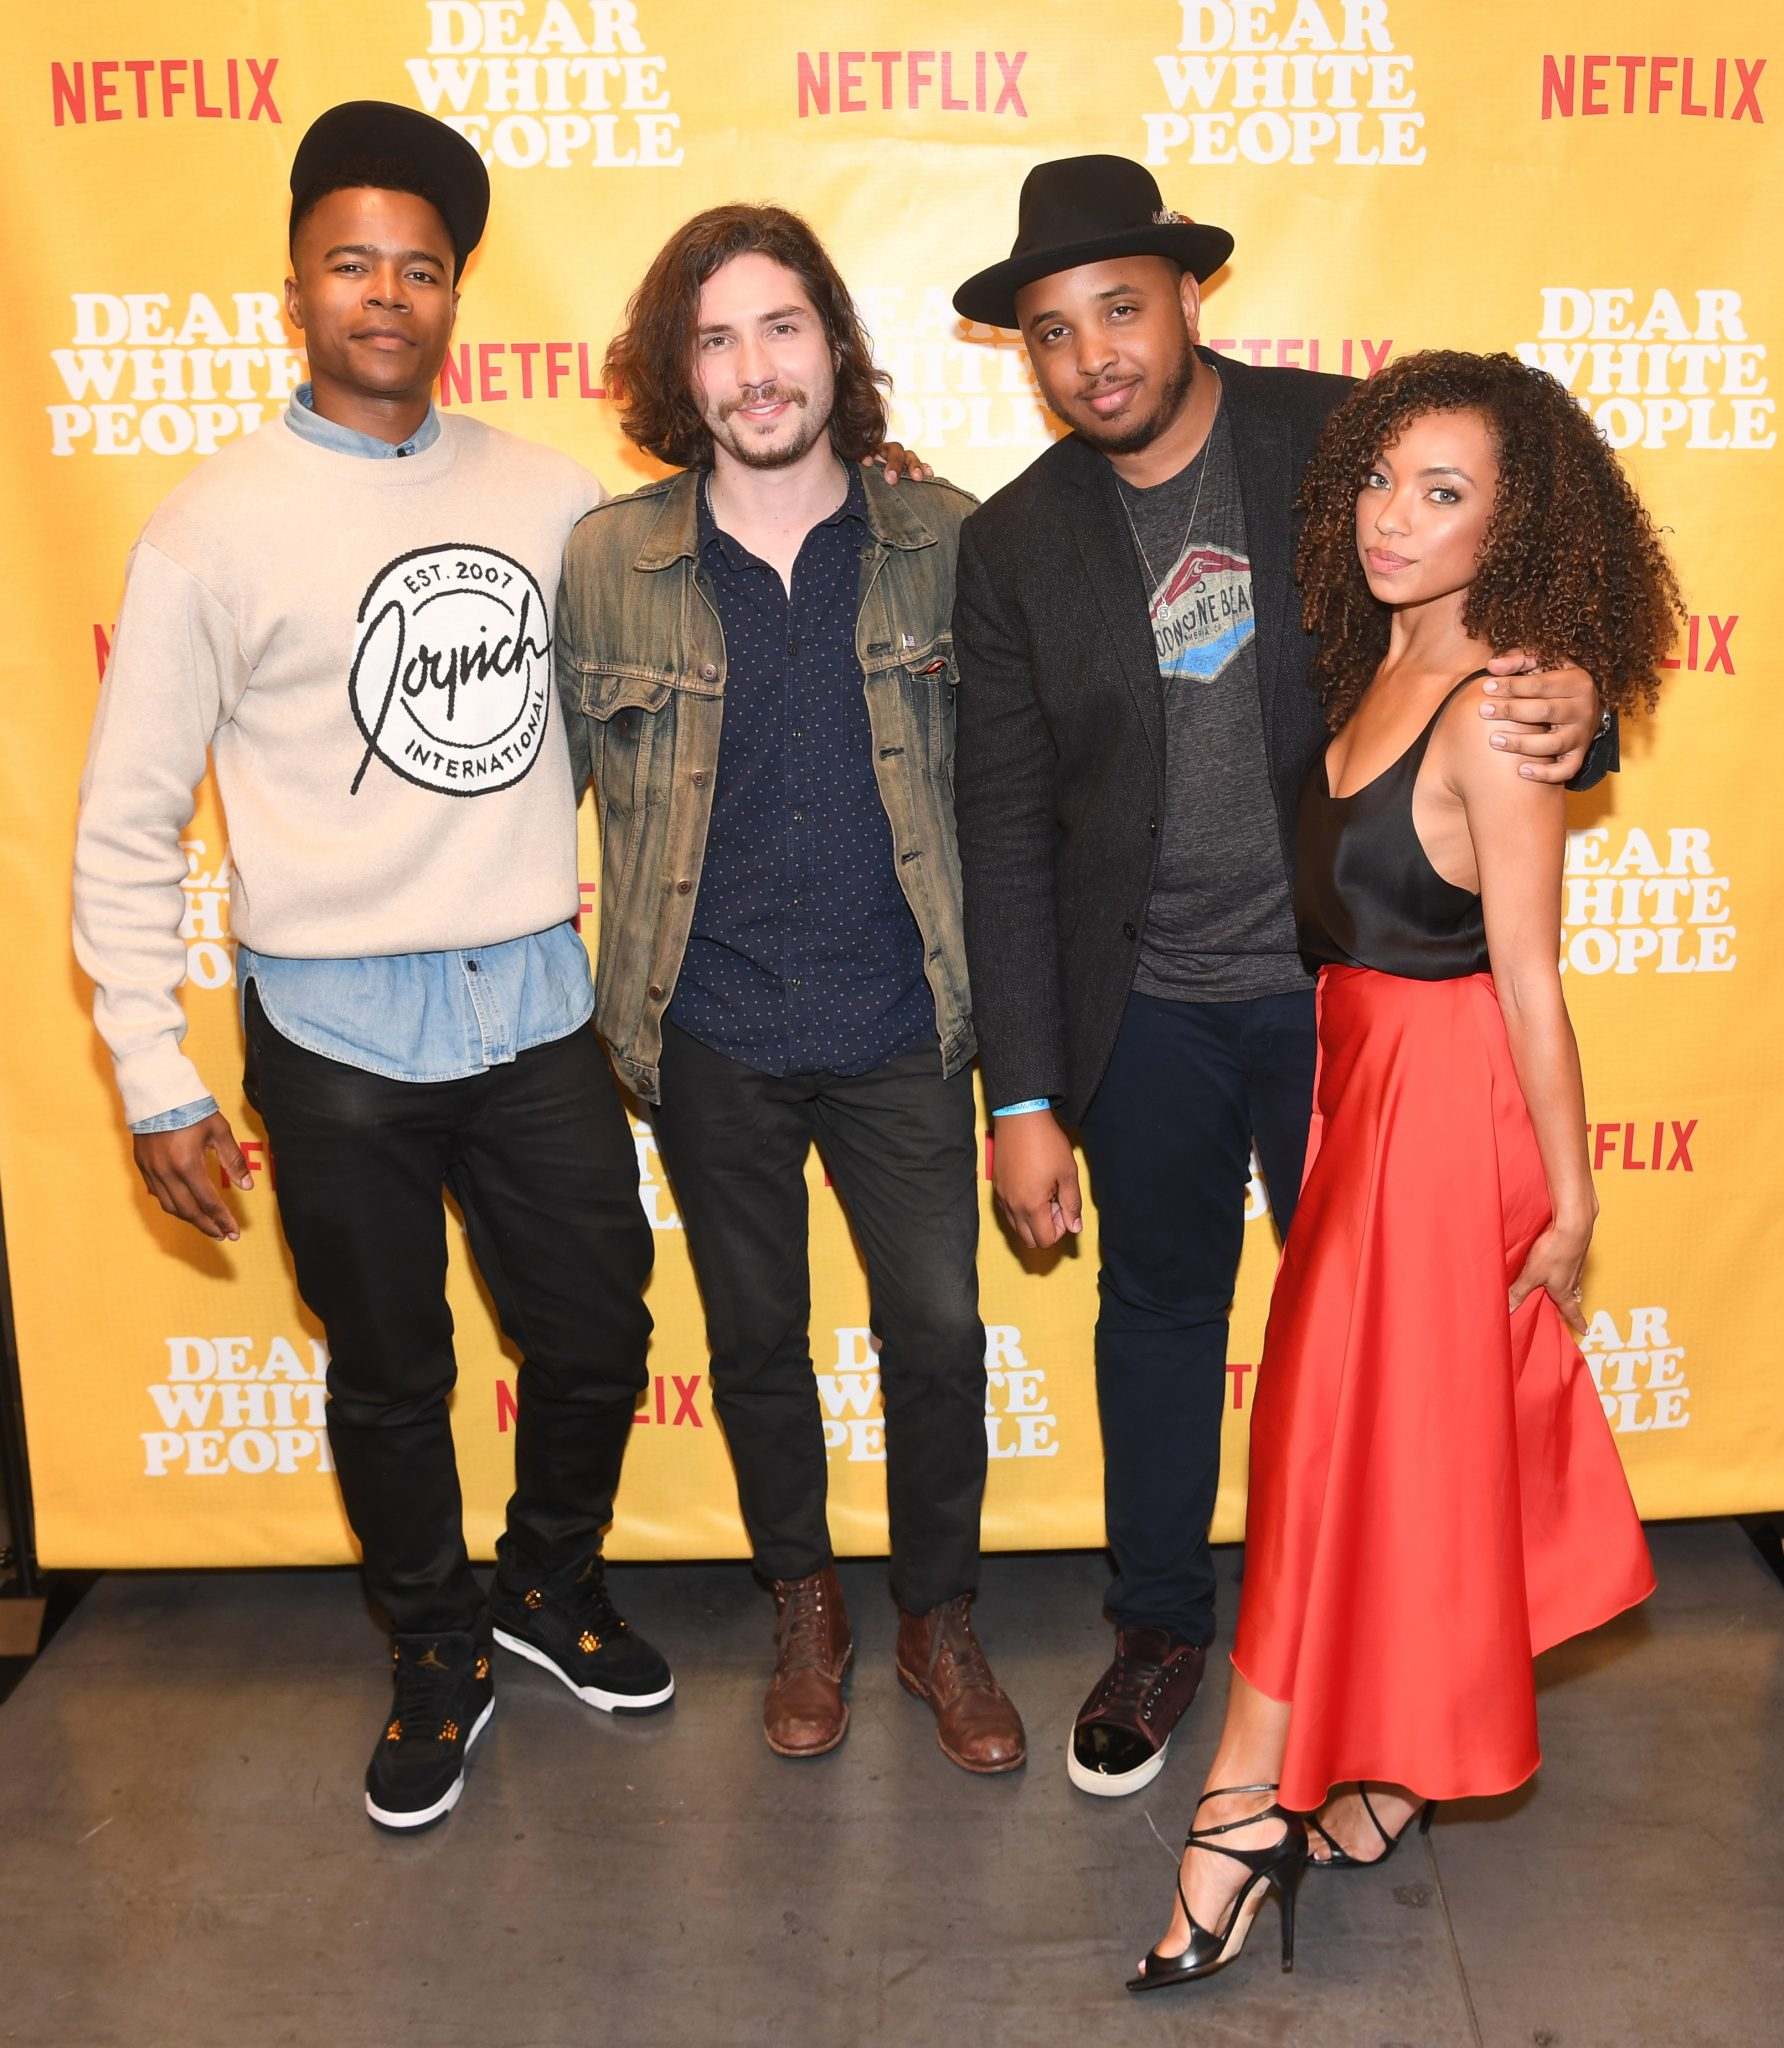 Netflix Dear White People Screening And Cast Q&A In Atlanta